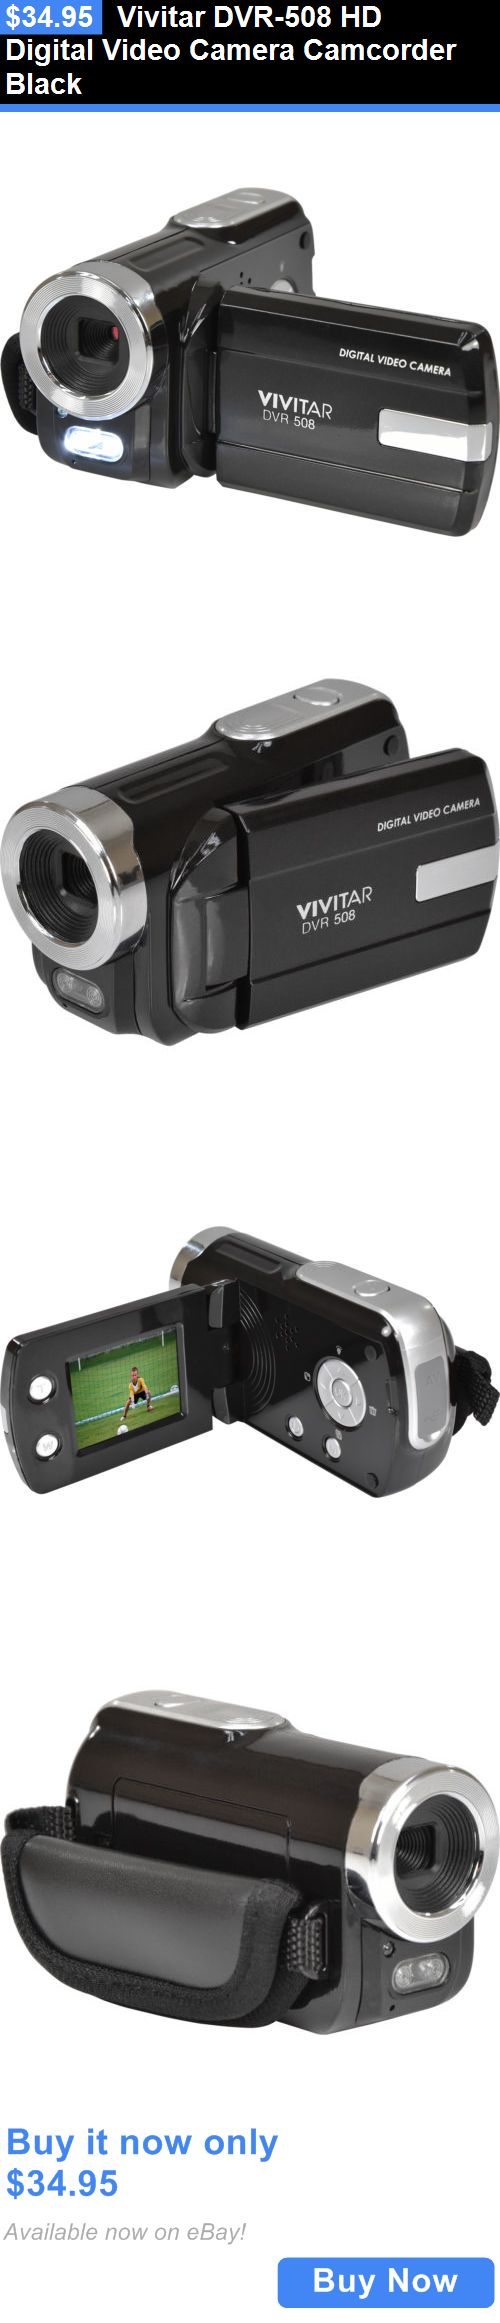 photo and video: Vivitar Dvr-508 Hd Digital Video Camera Camcorder Black BUY IT NOW ONLY: $34.95